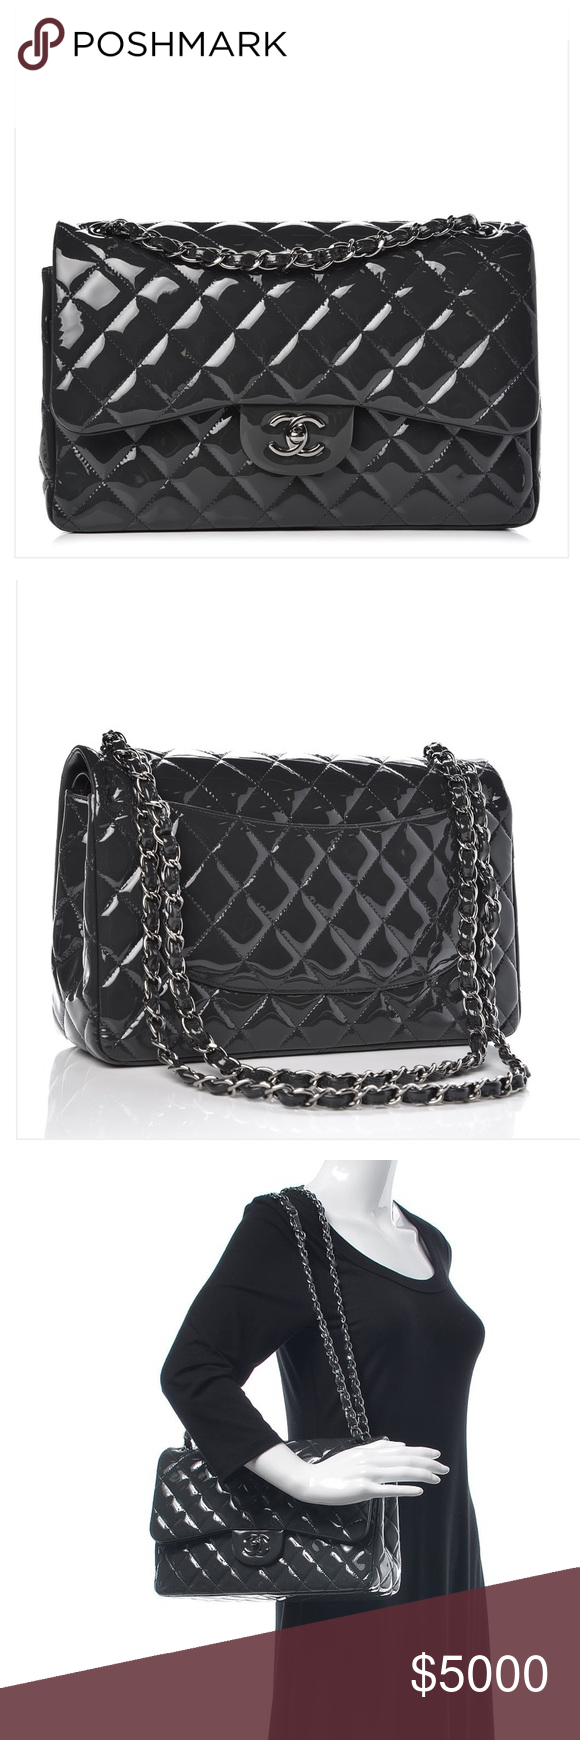 c54178e1782470 CHANEL Quilted Patent Leather Jumbo Flap Bag CHANEL Quilted Patent Leather  Jumbo Flap Bag. Authentic